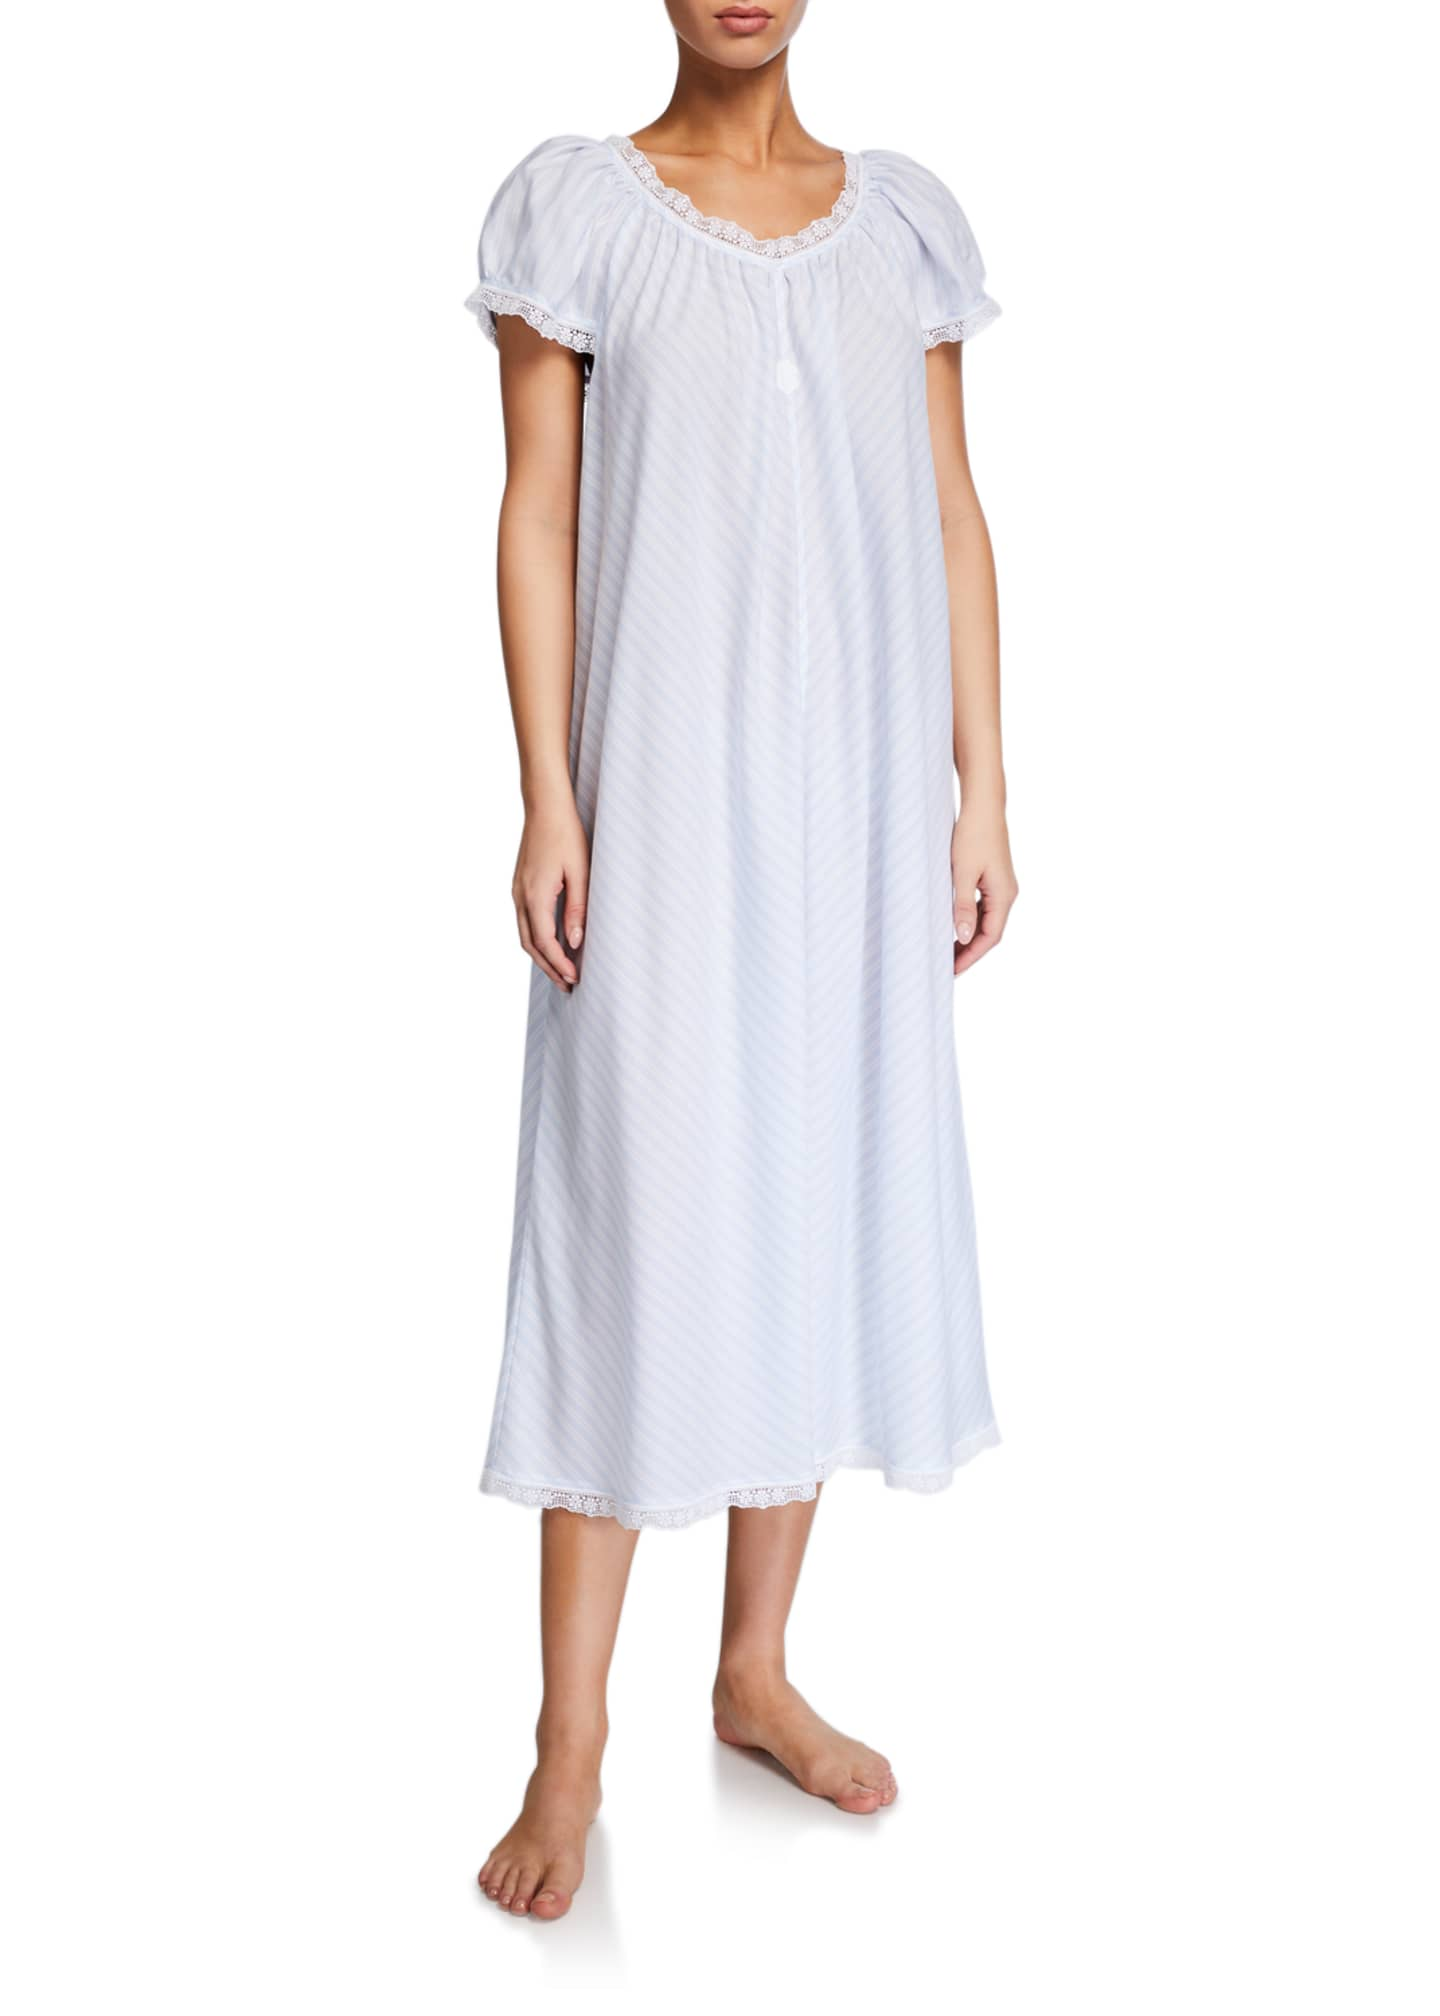 Celestine Lynn Cap-Sleeve Nightgown